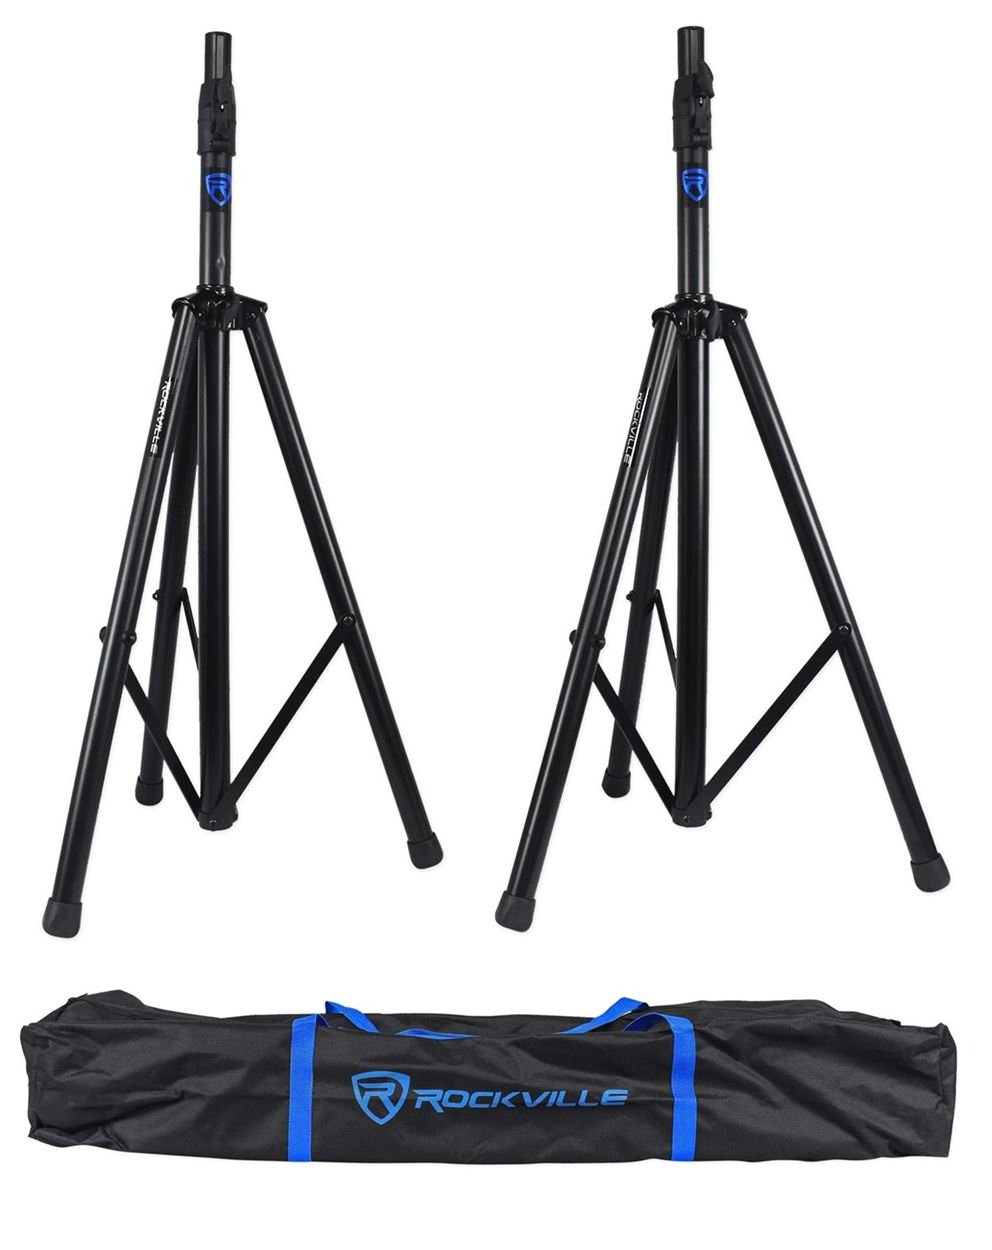 Rockville RVSS3 Pair Tripod DJ PA Speaker Stands Push Button Air Lowering System by Rockville